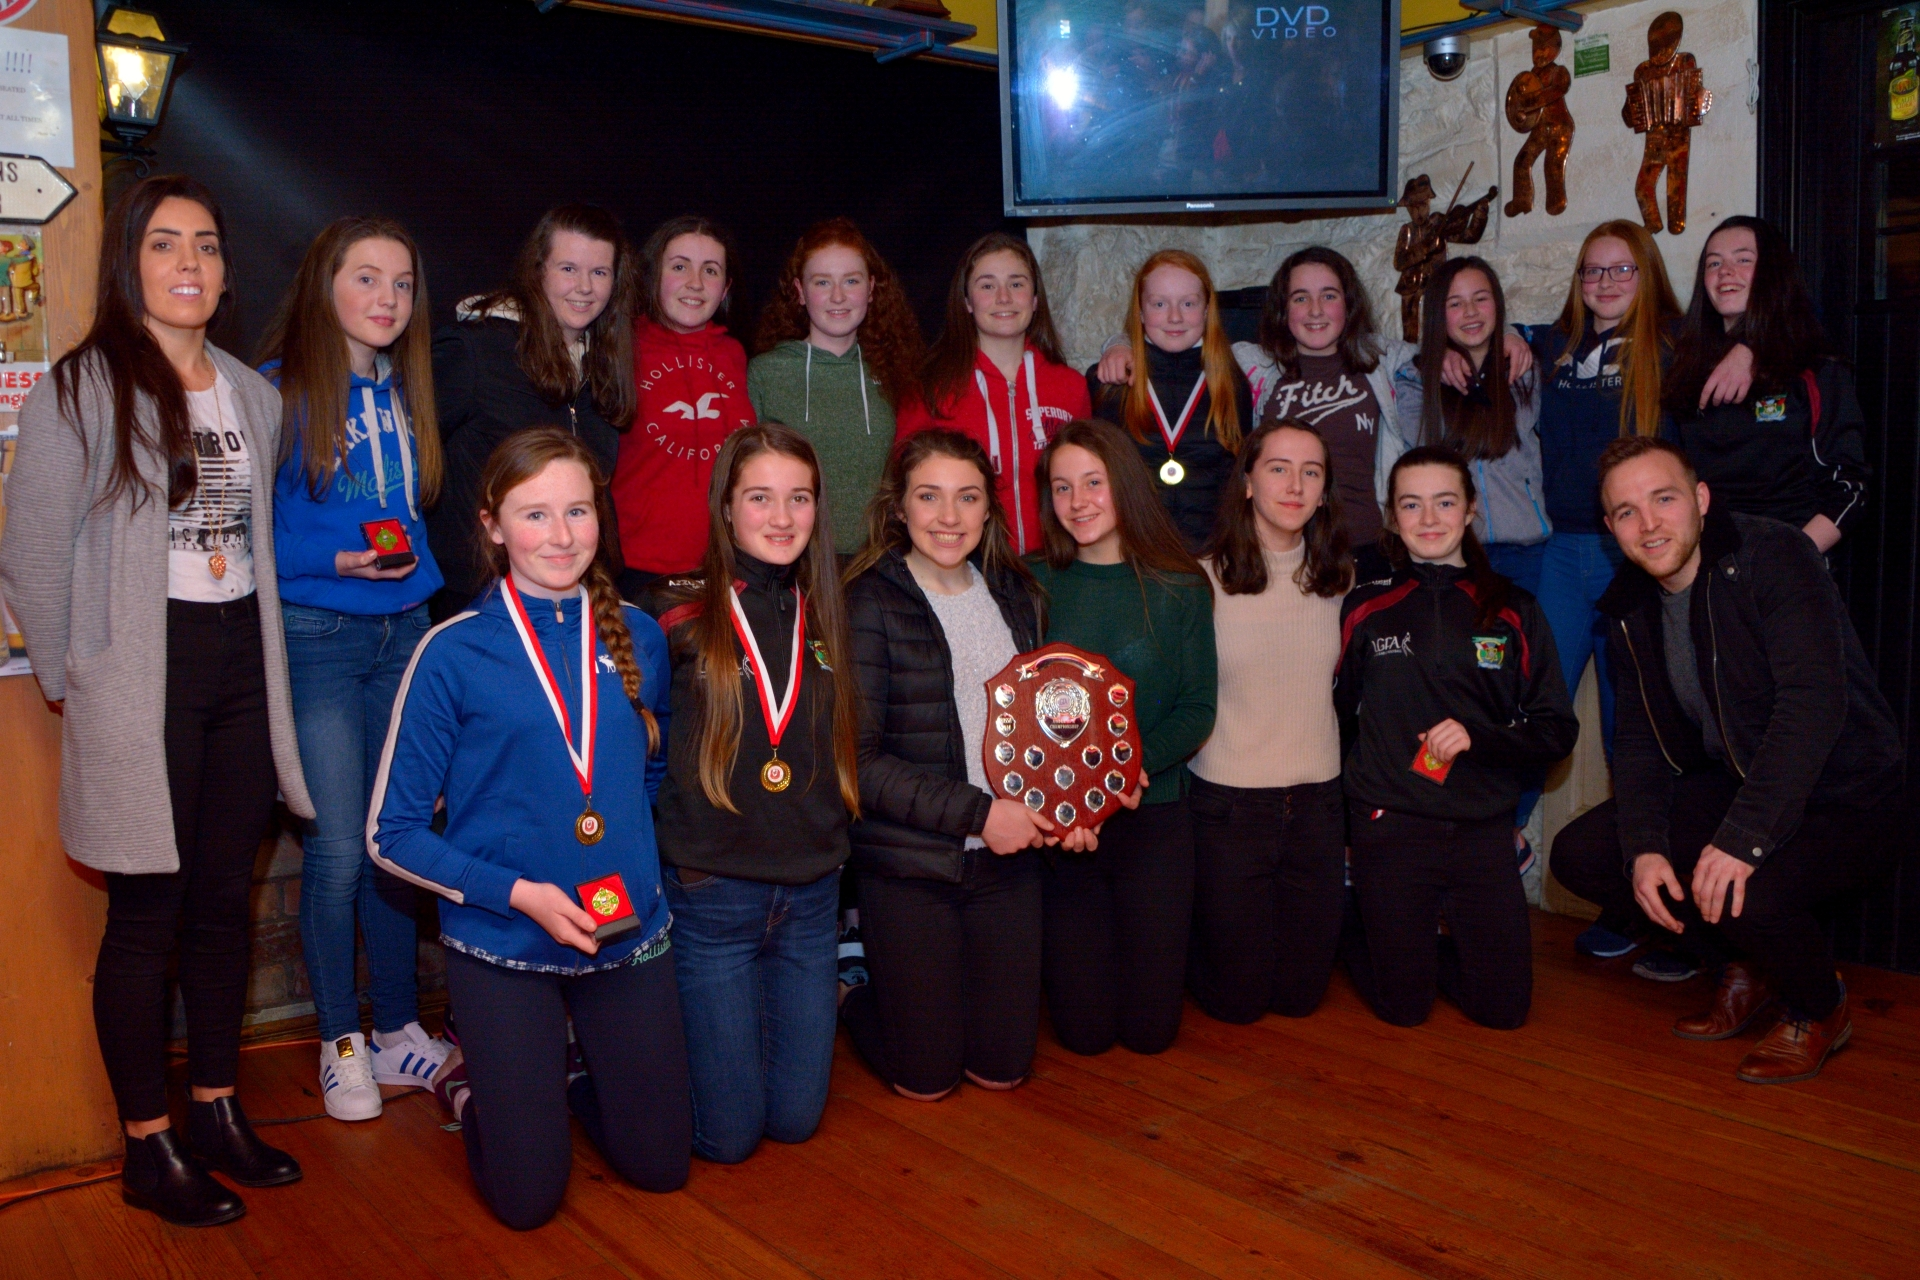 Cromane Ladies Under 15 County Champions with Sarah Houlihan & Darran O'Sullivan at the medal presentation